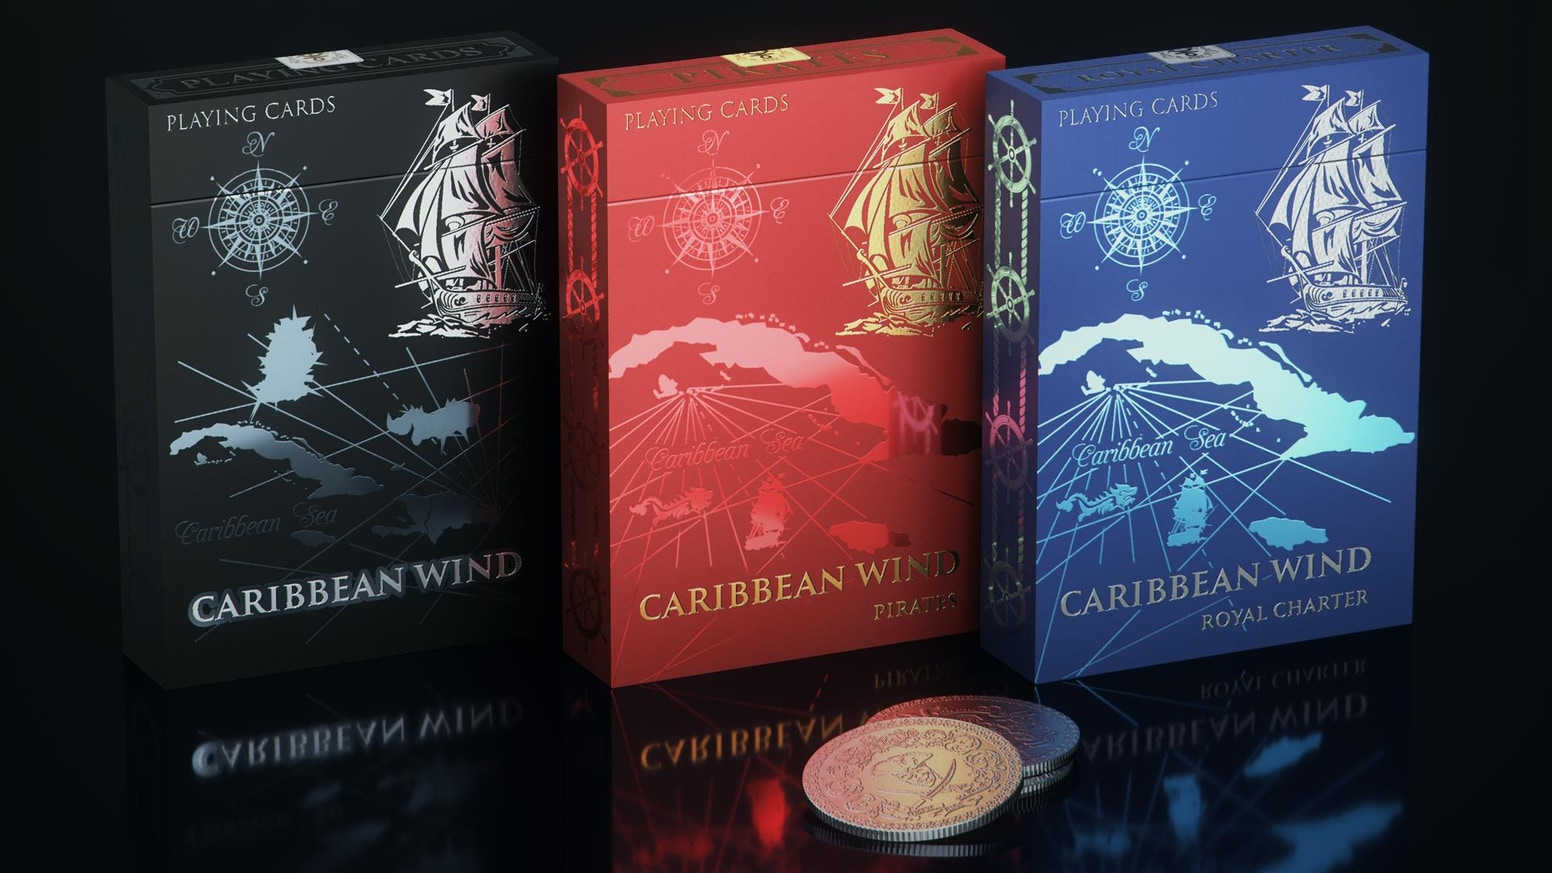 "Playing cards inspired from the Golden Age of Piracy. ""Caribbean Wind"", it continues the SVI series playing cards printed by SPCC."